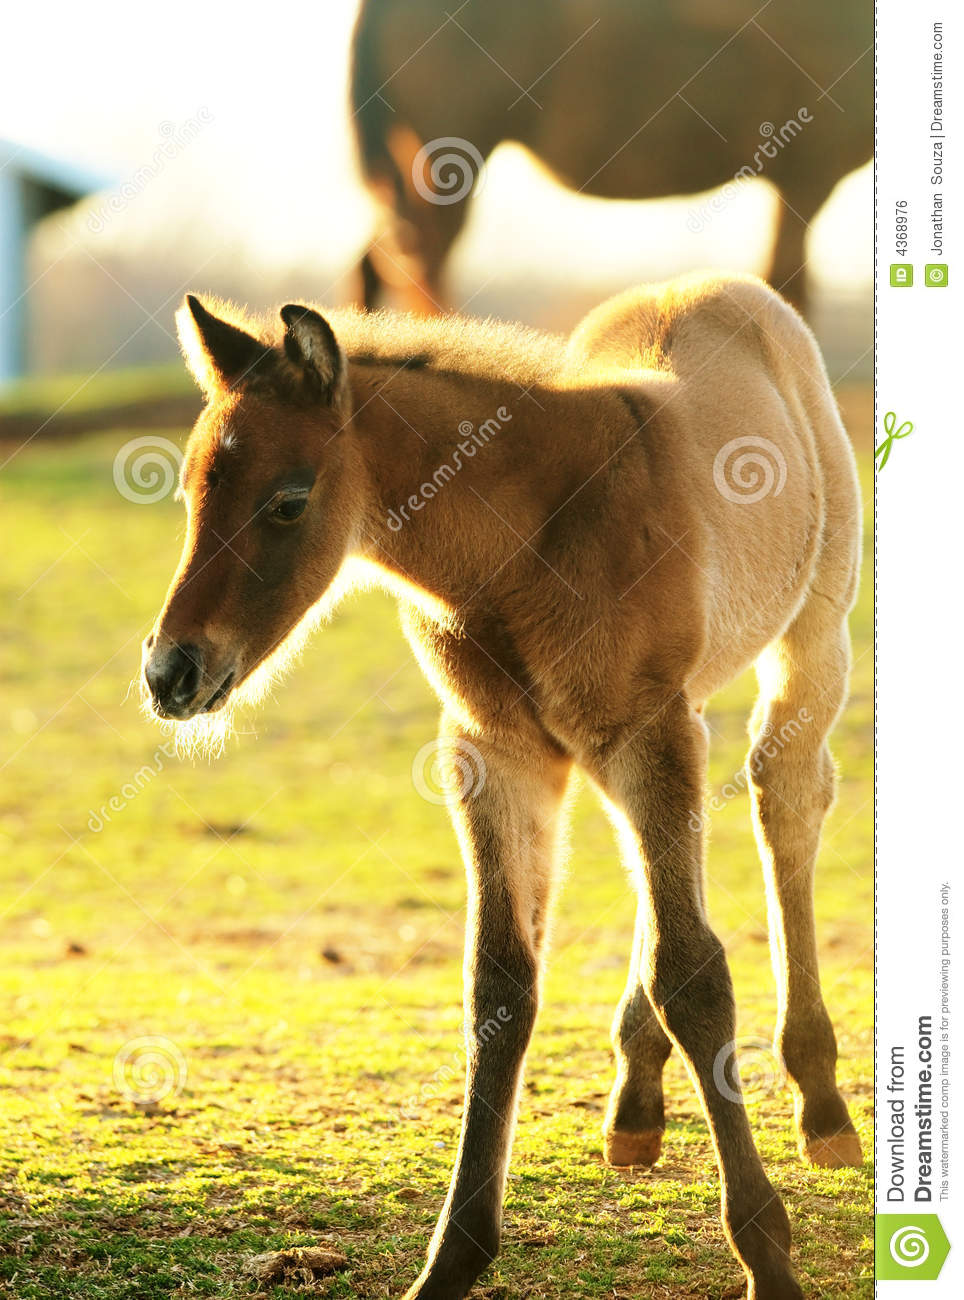 Foaling around